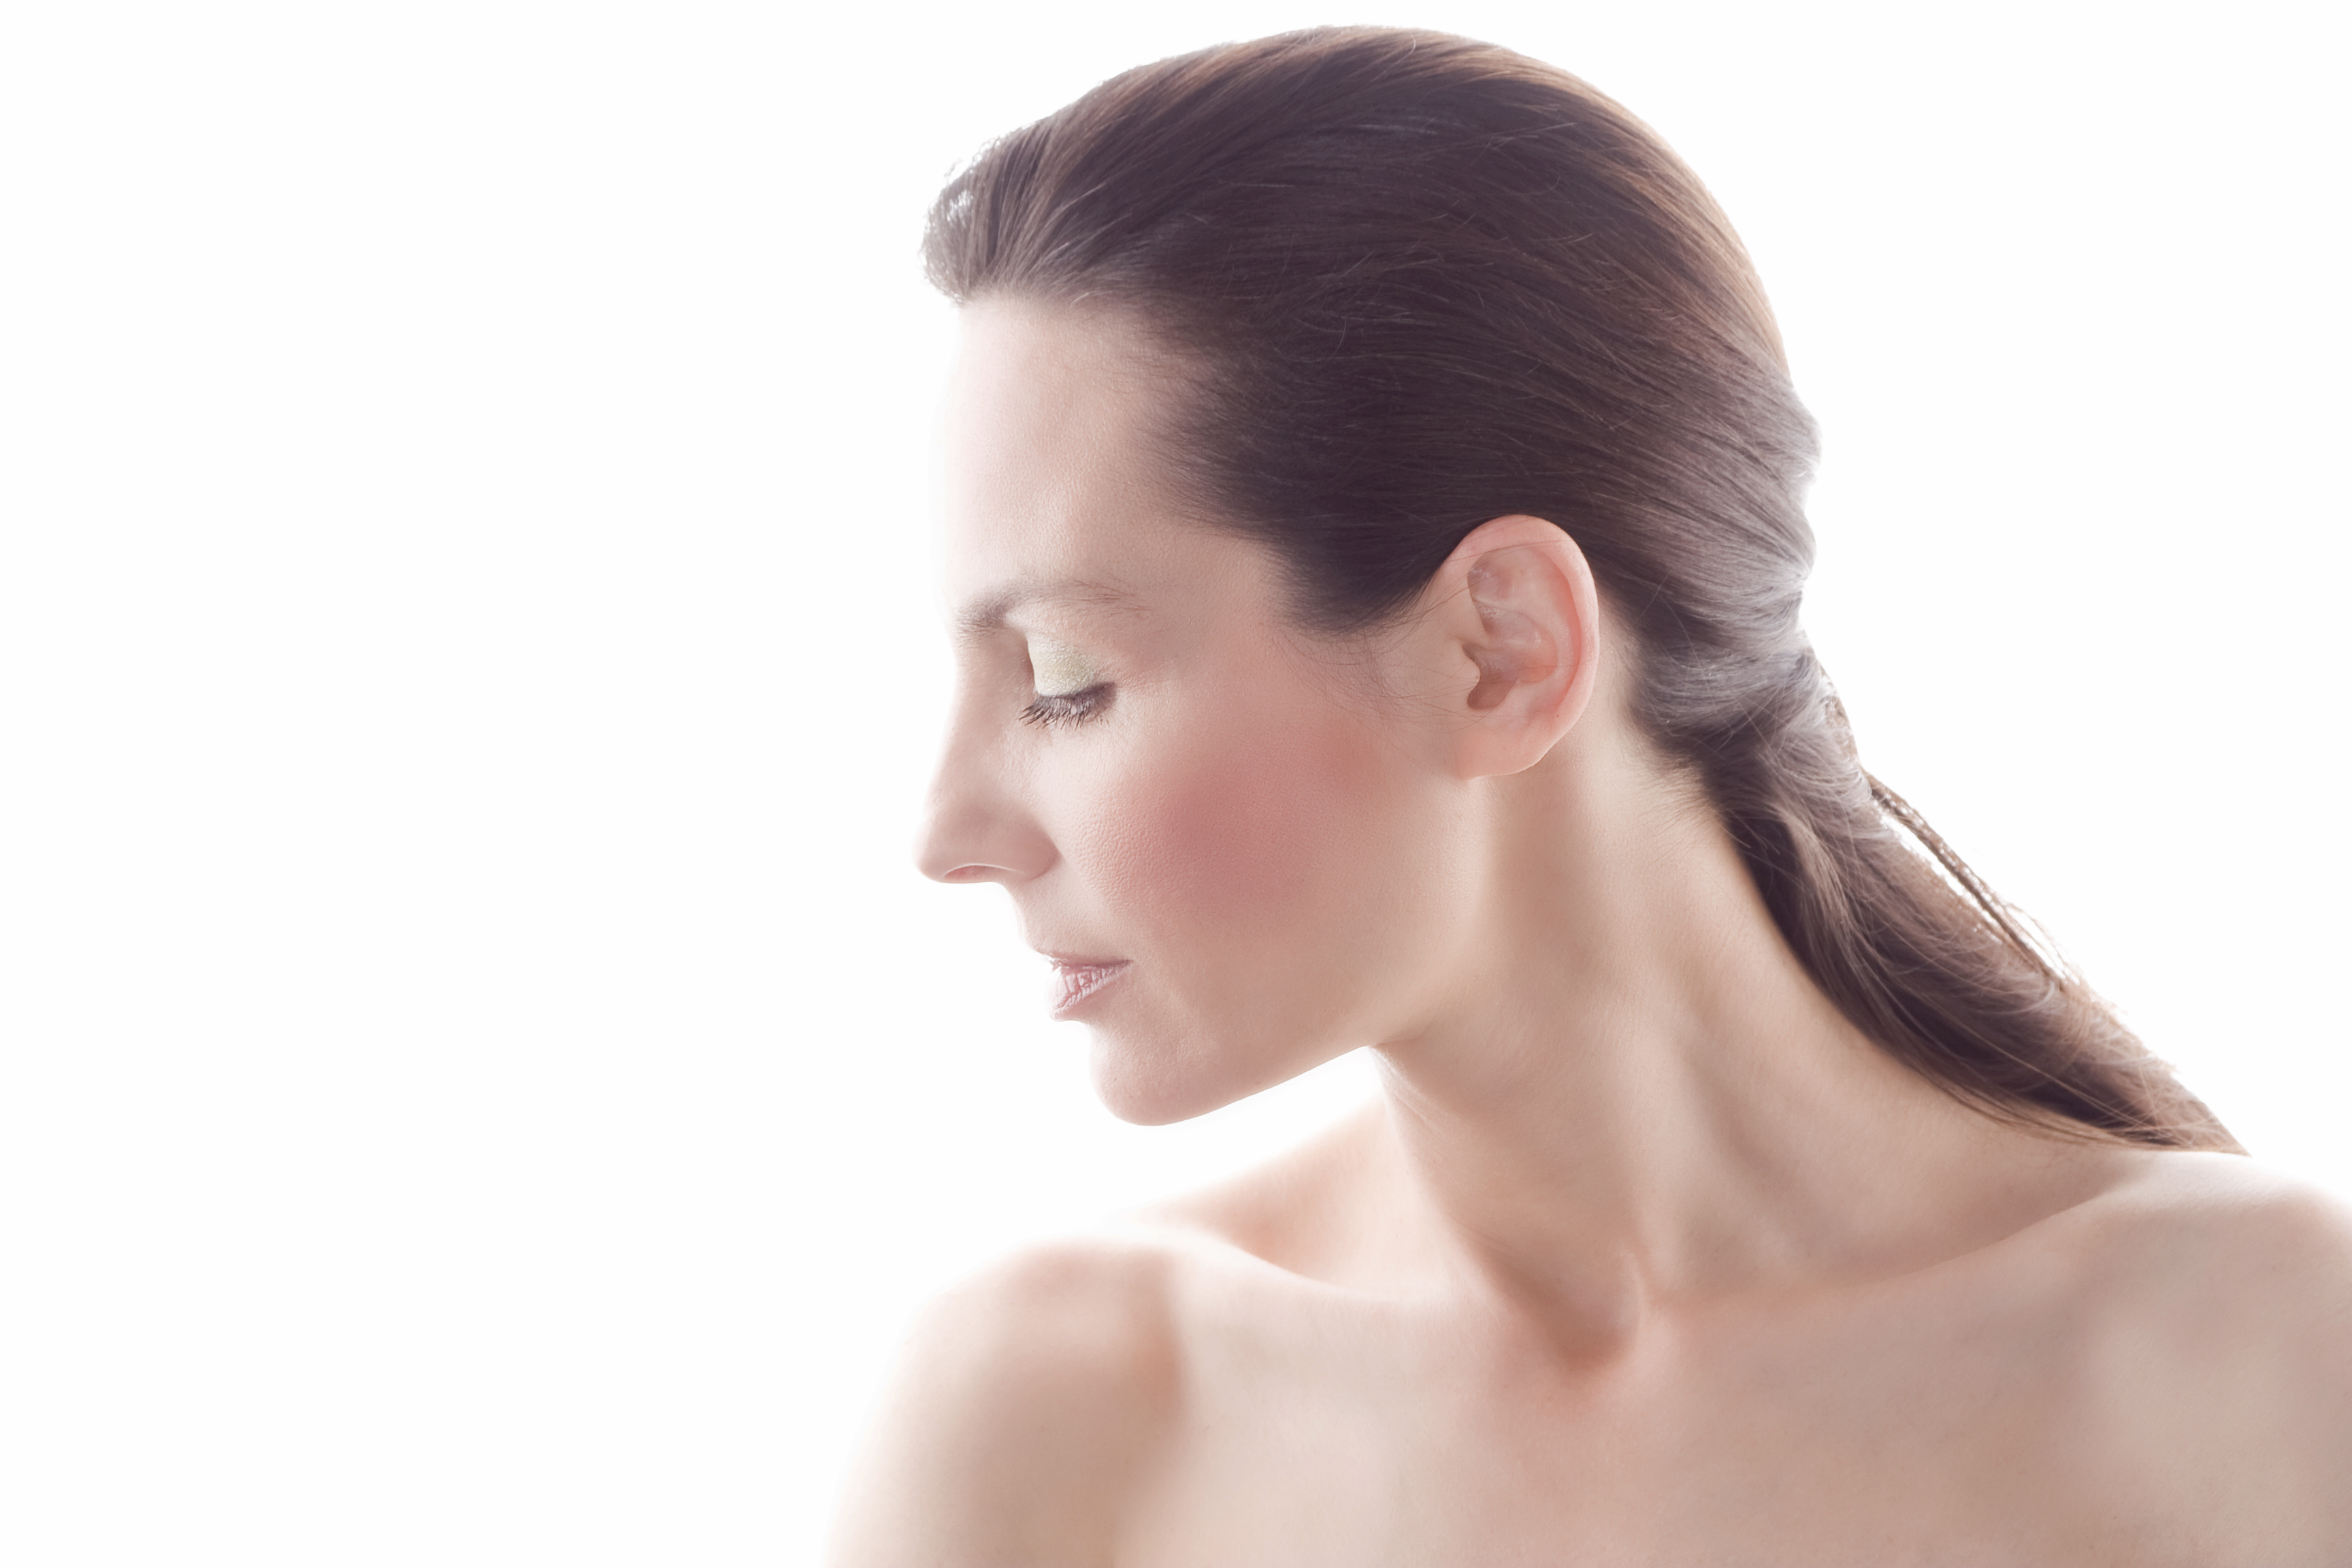 Skip the Scarf: Non-Invasive Treatments for Sexier Neck